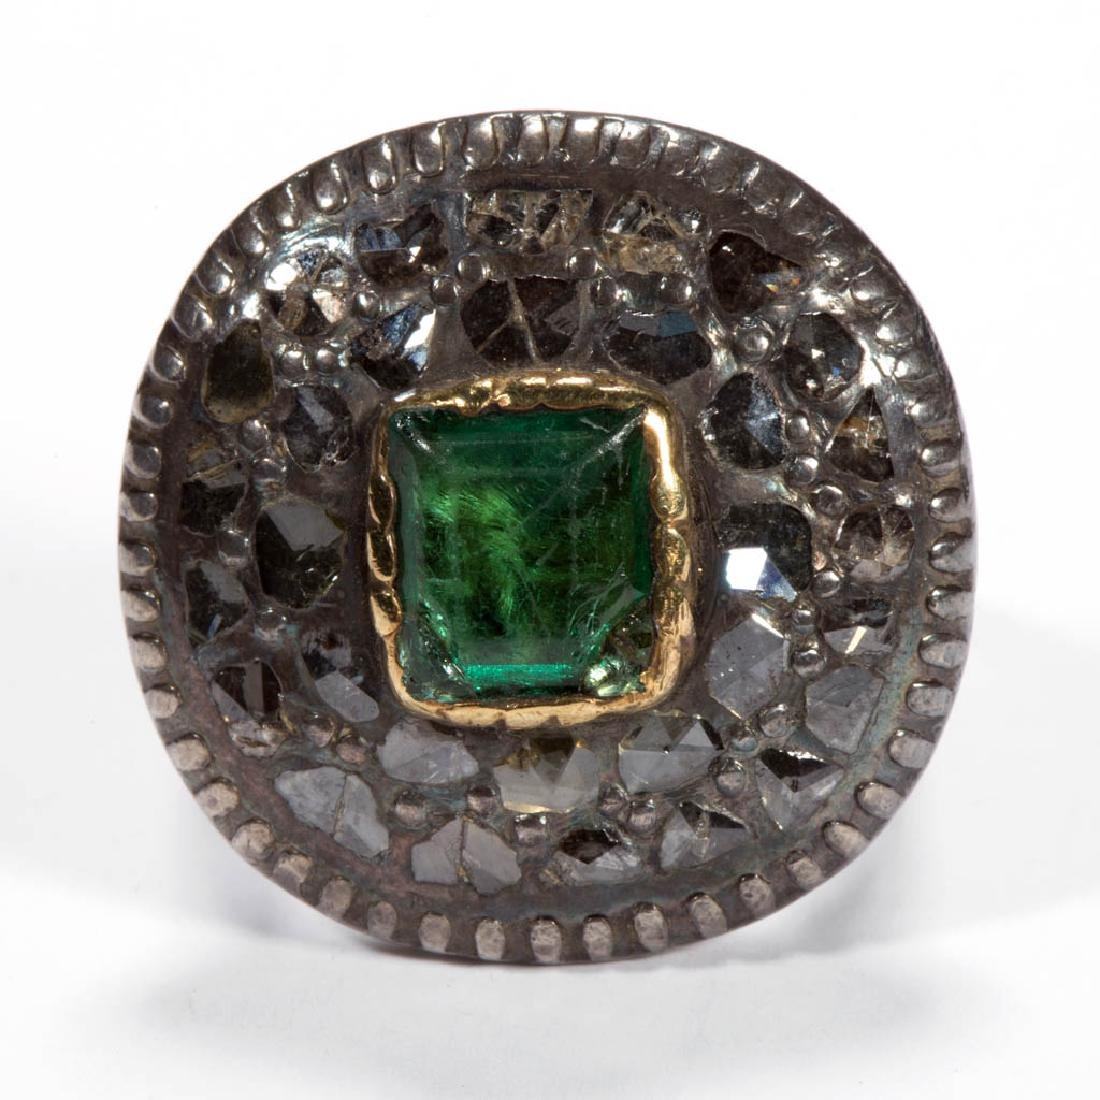 GEORGIAN GOLD, EMERALD, AND DIAMOND LADY'S RING WITH